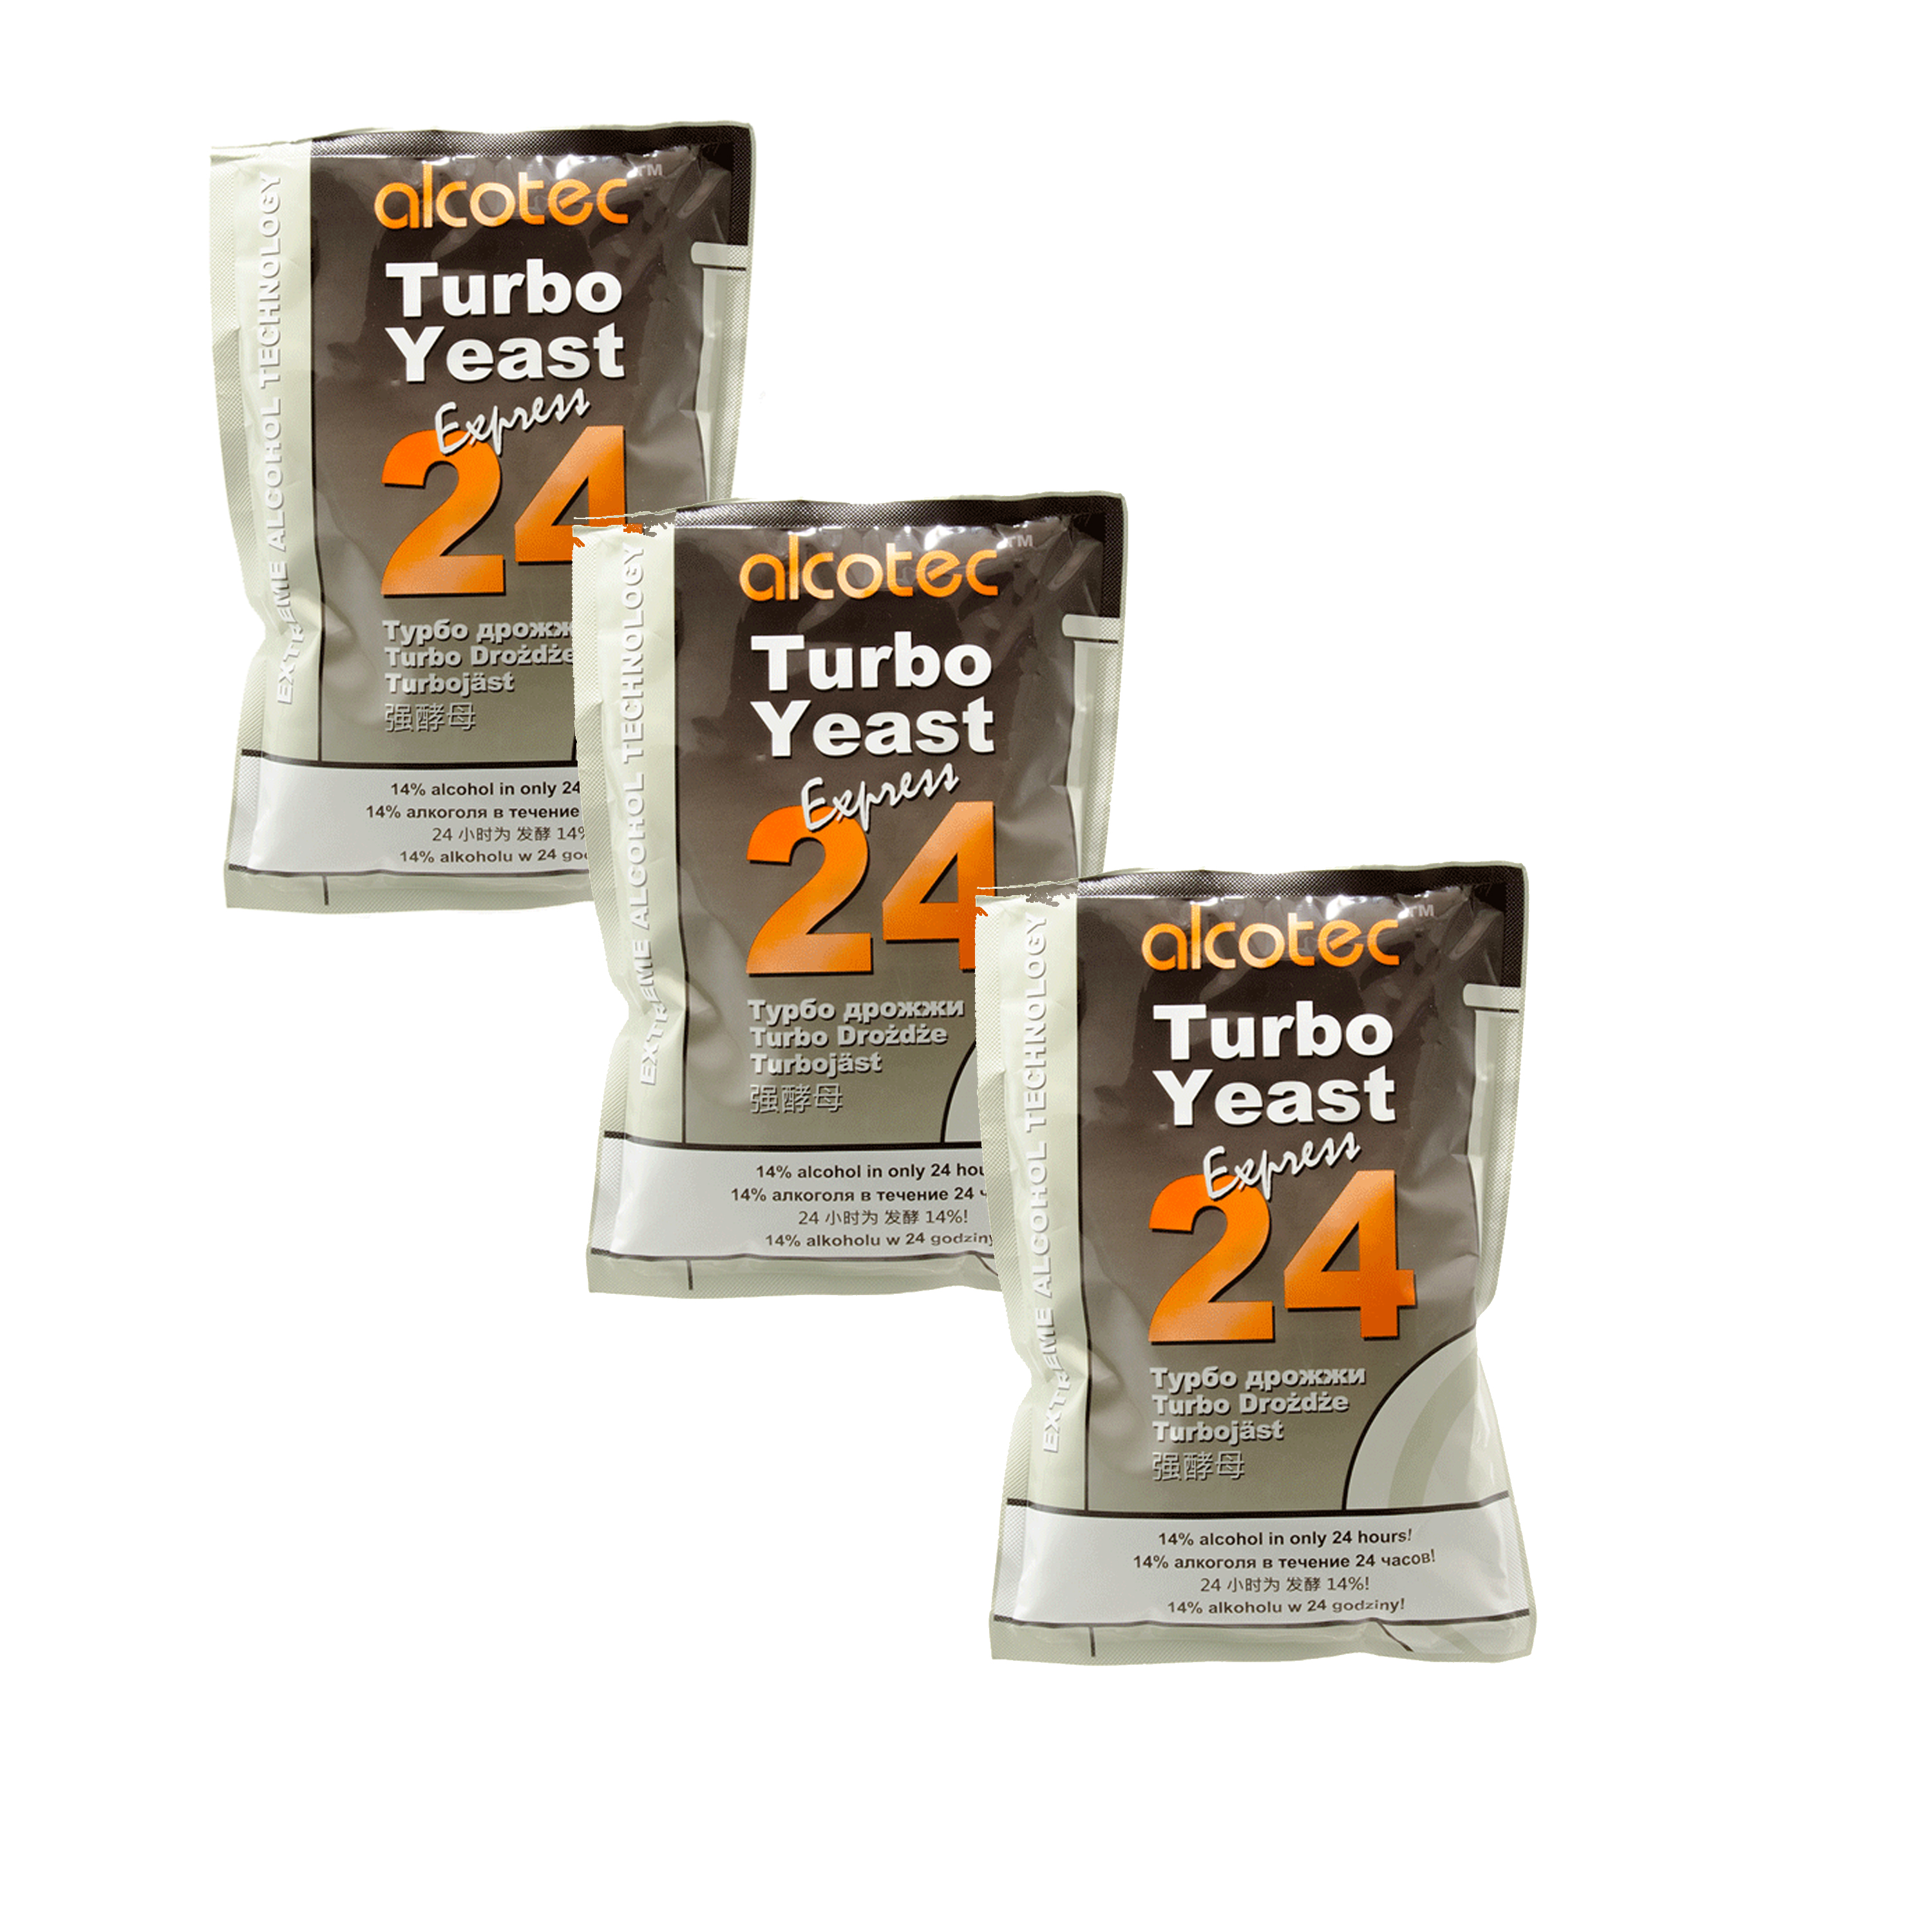 Alcotec 24 Hour Turbo Dry Distiller's Yeast Fast Fermentation Moonshine 3 Pack by HomeBrewStuff